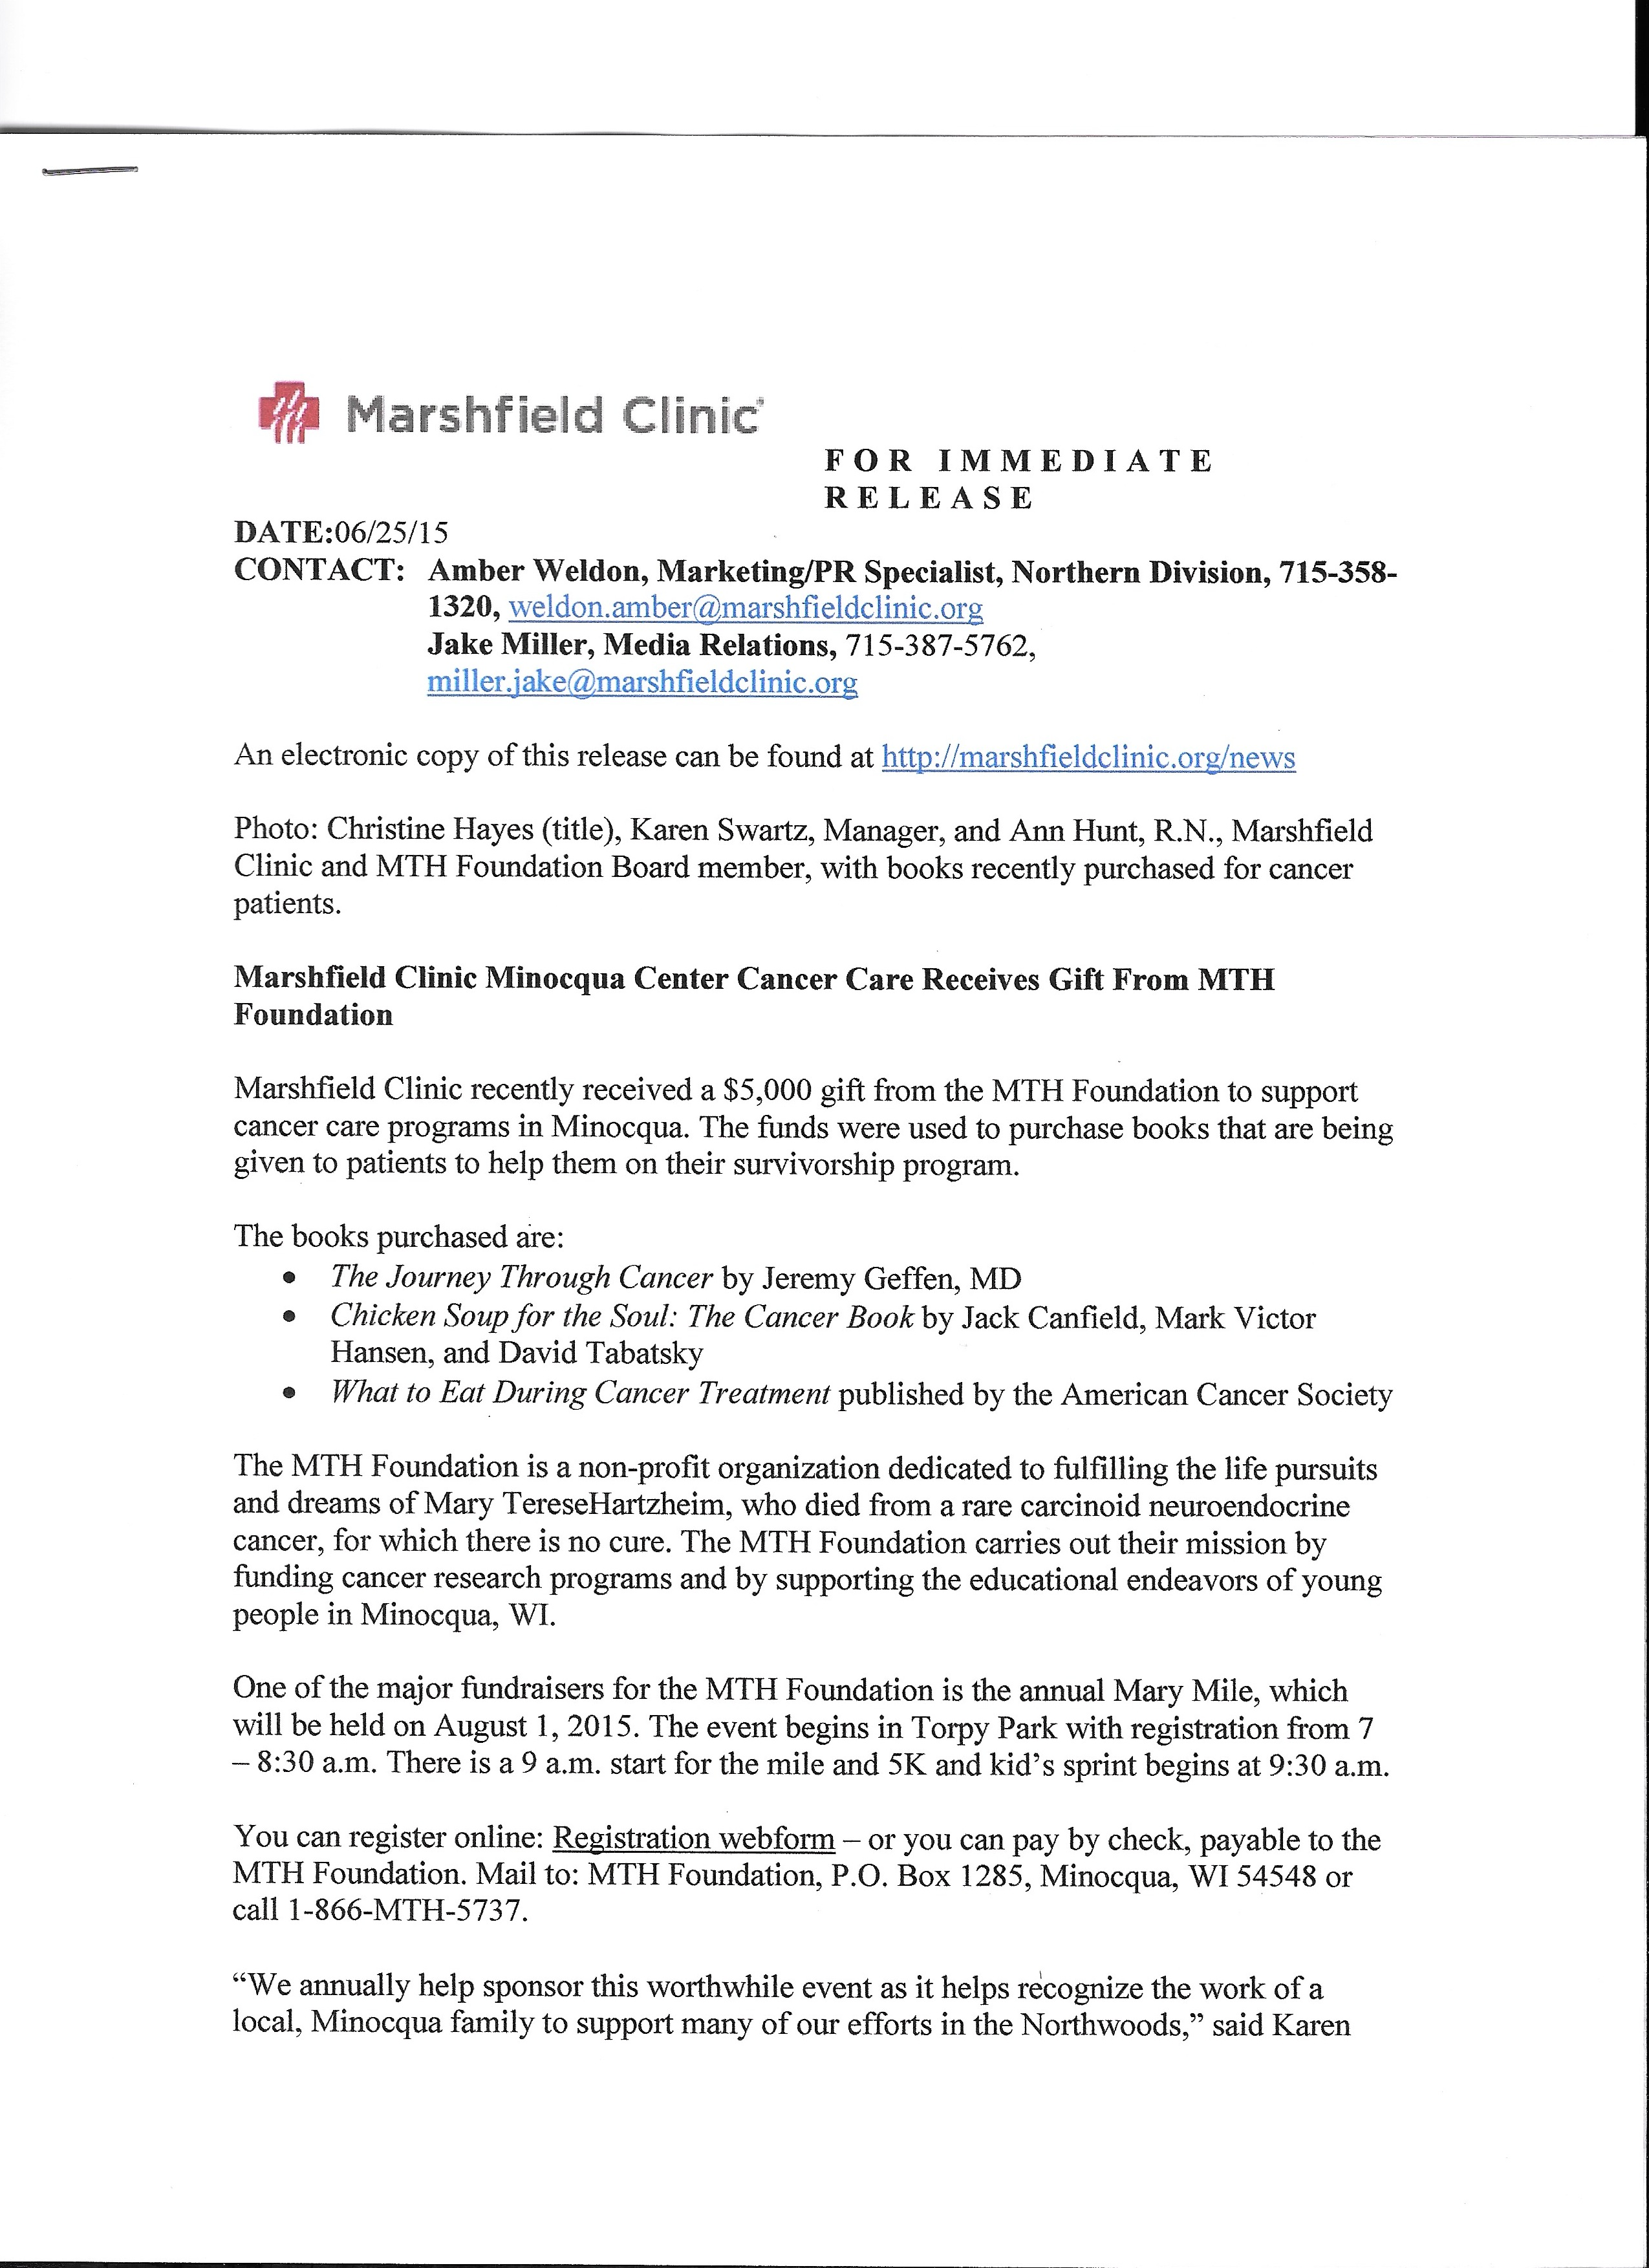 023 Research Paper Mth Marshfield Clinic Press Release Cancer Unique Outline Skin Breast Lung Full